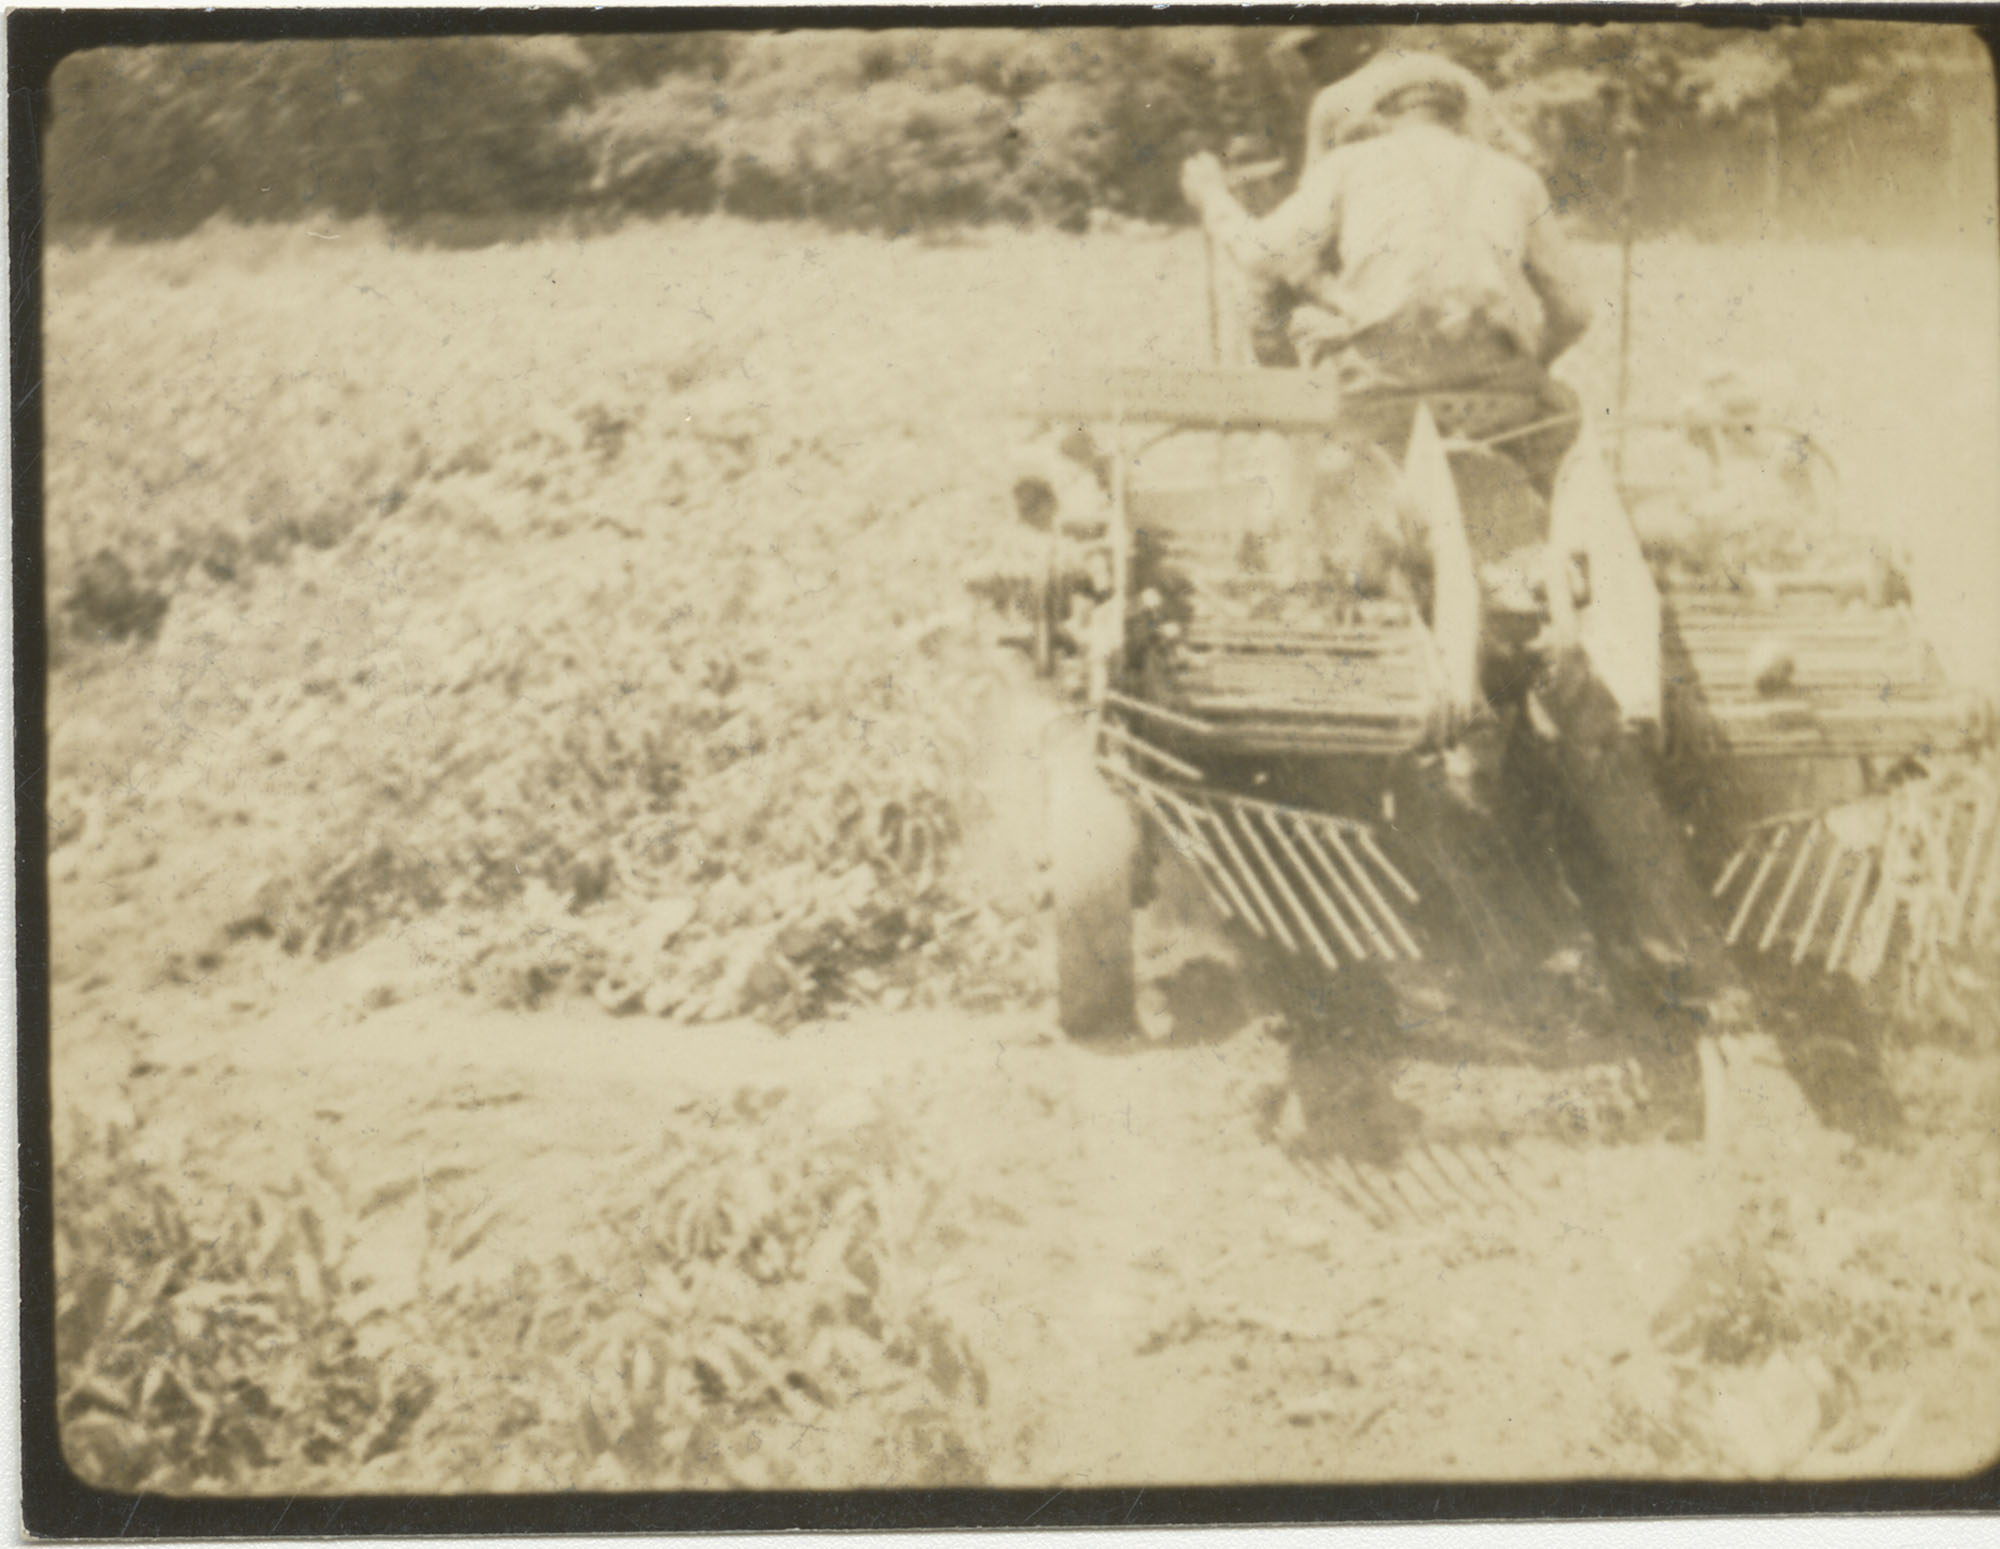 Unidentified Man Operating Agriculture Machinery